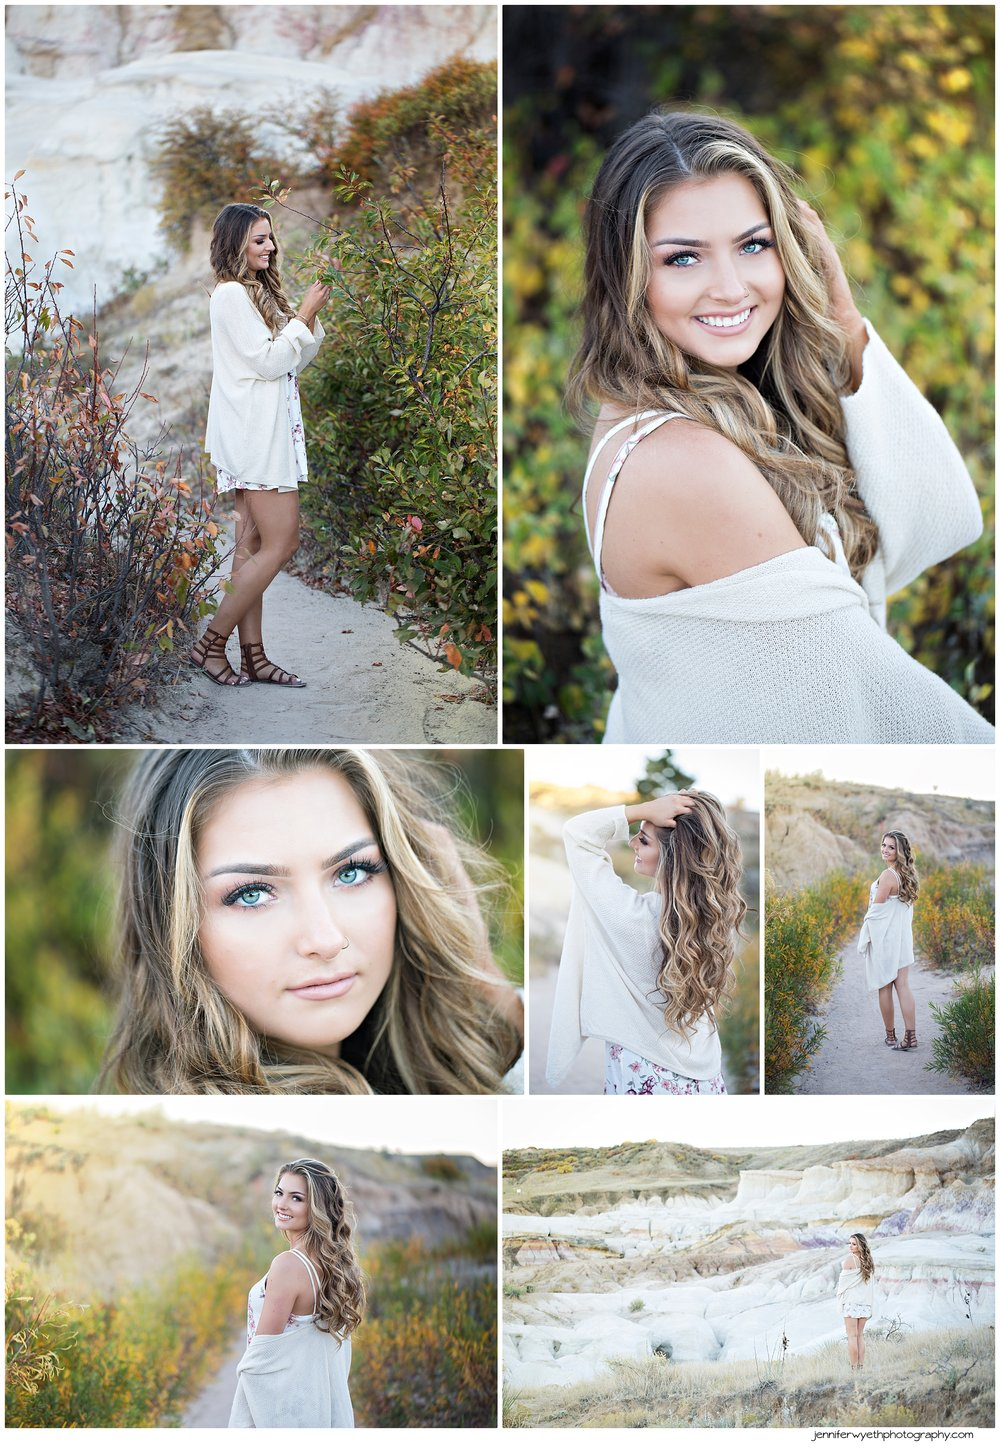 Jennifer-Wyeth-photography-senior-pictures-colorado-springs-photographer_0203.jpg